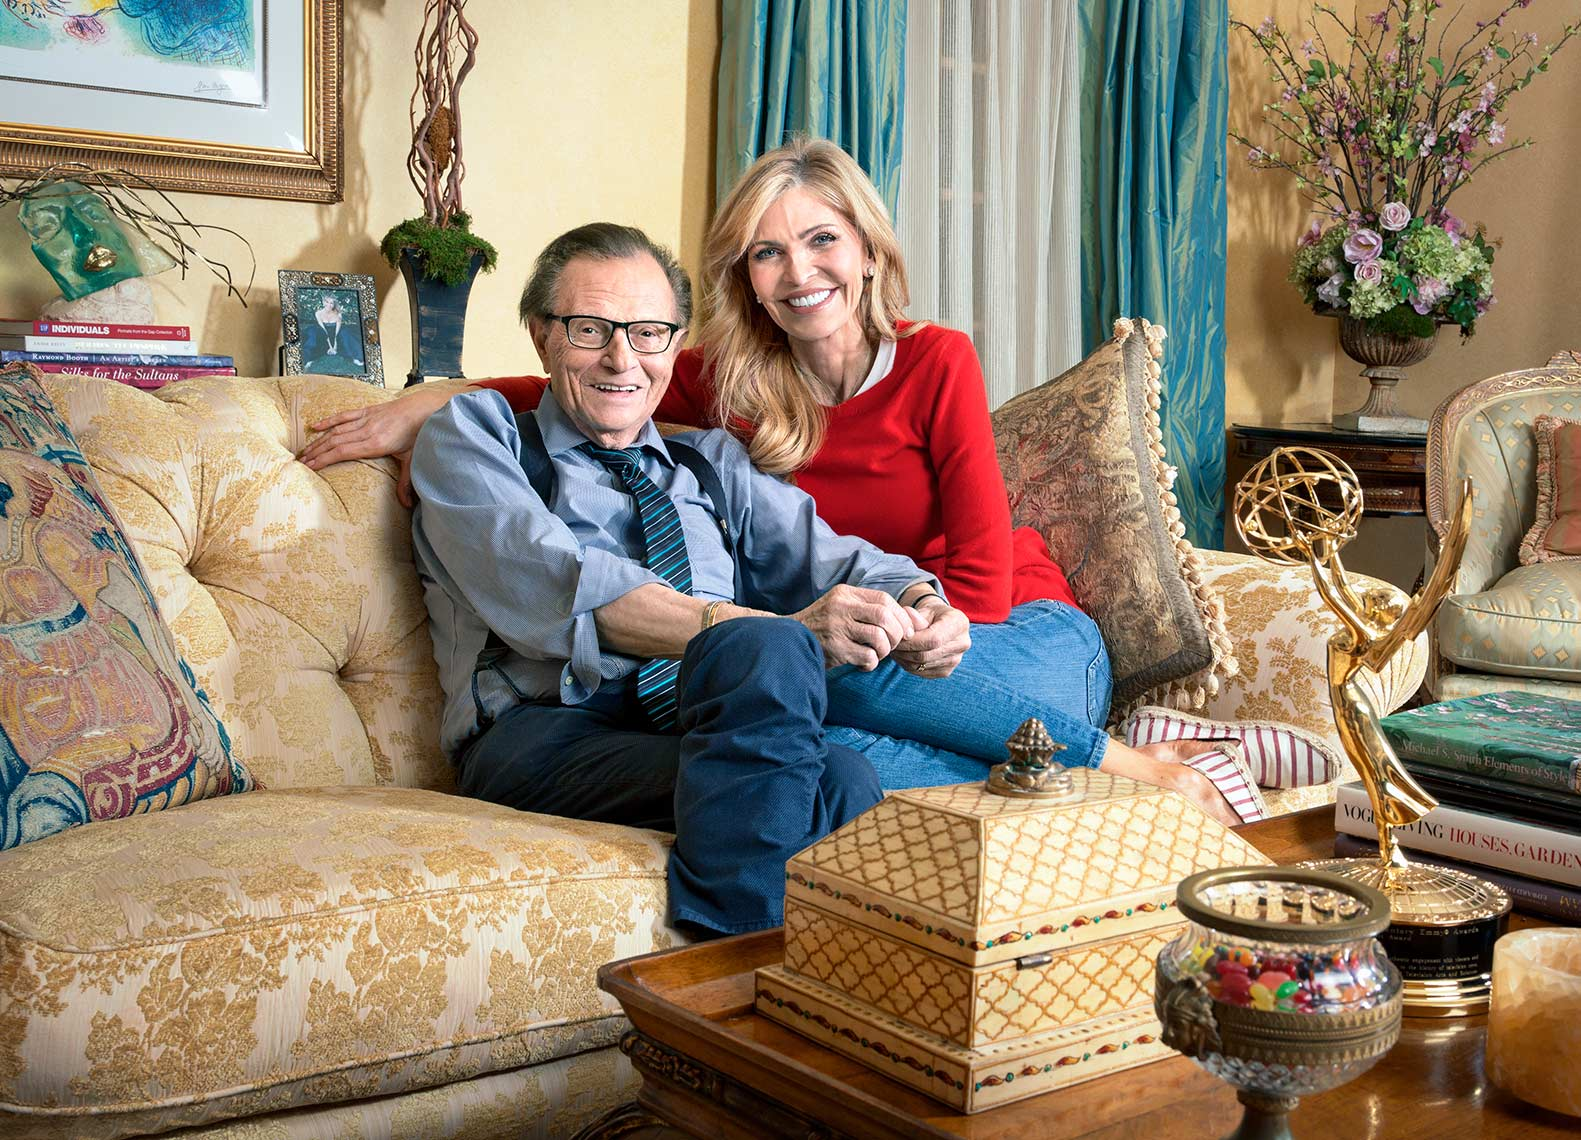 Larry King and his wife Shawn King